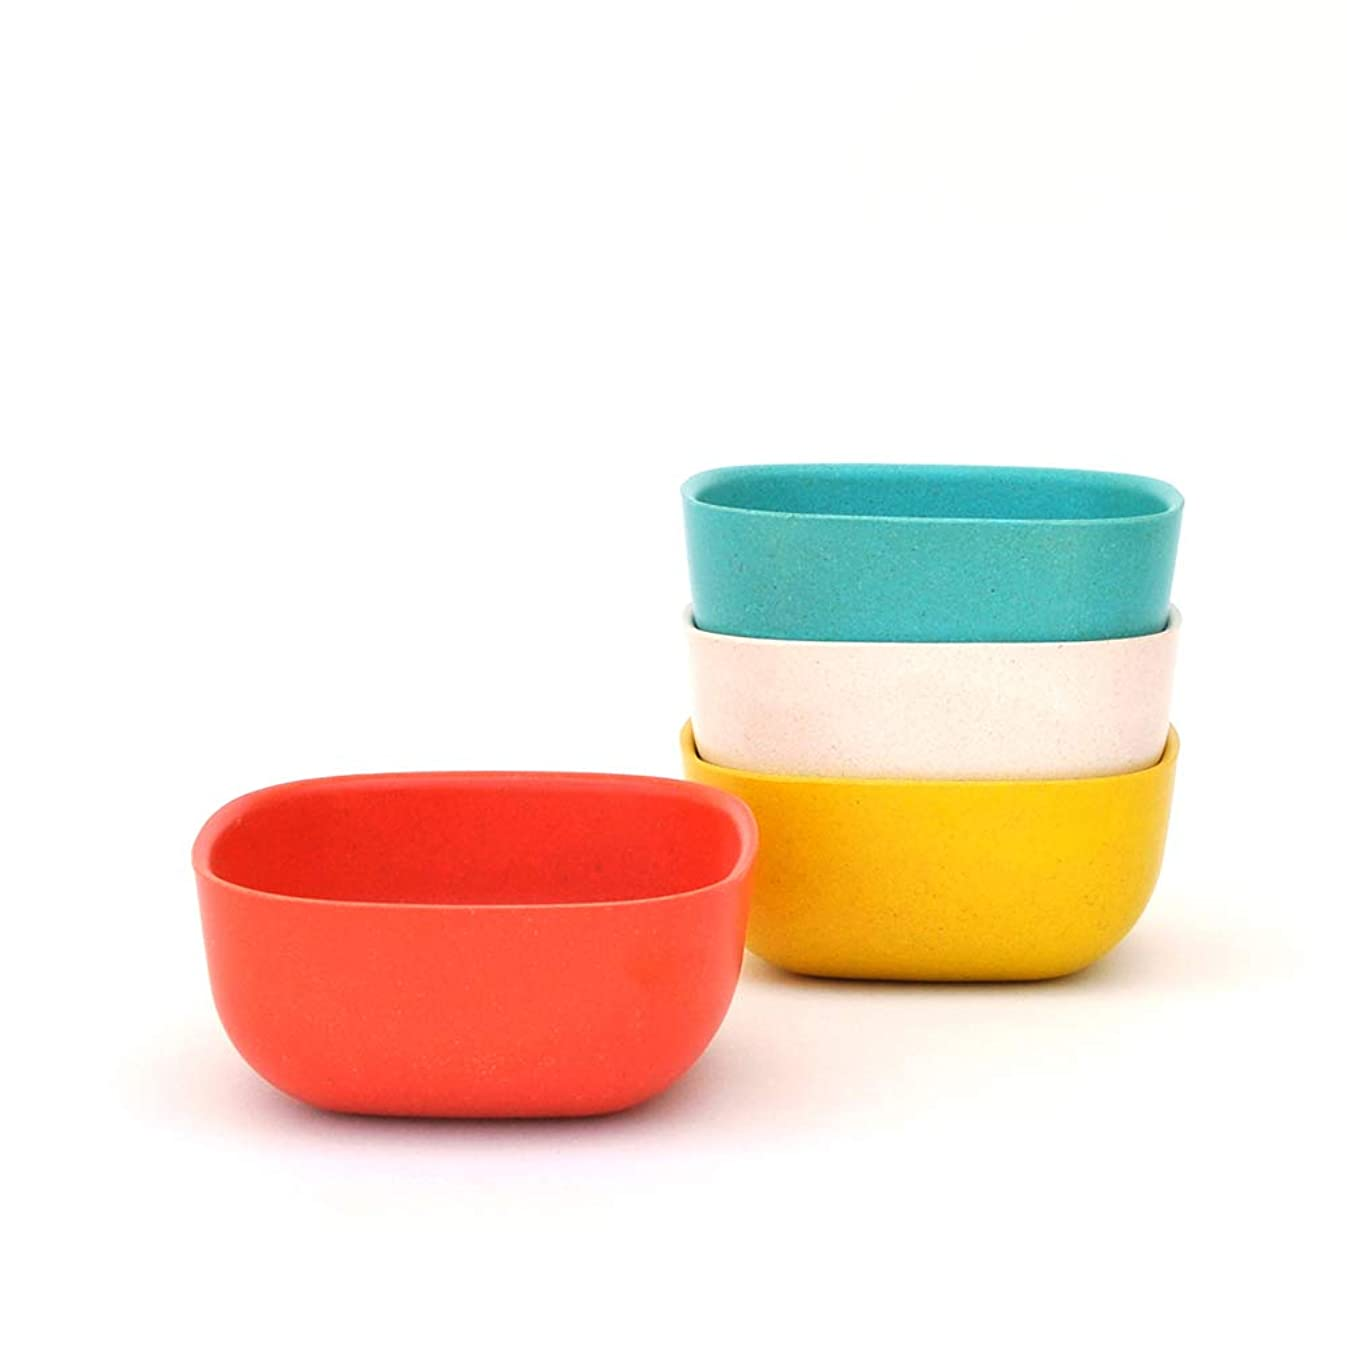 EKOBO Bamboo 8oz Bowl Set, Service for 4, BIOBU Eco-material, Indoor/Outdoor dining, Assorted Colors